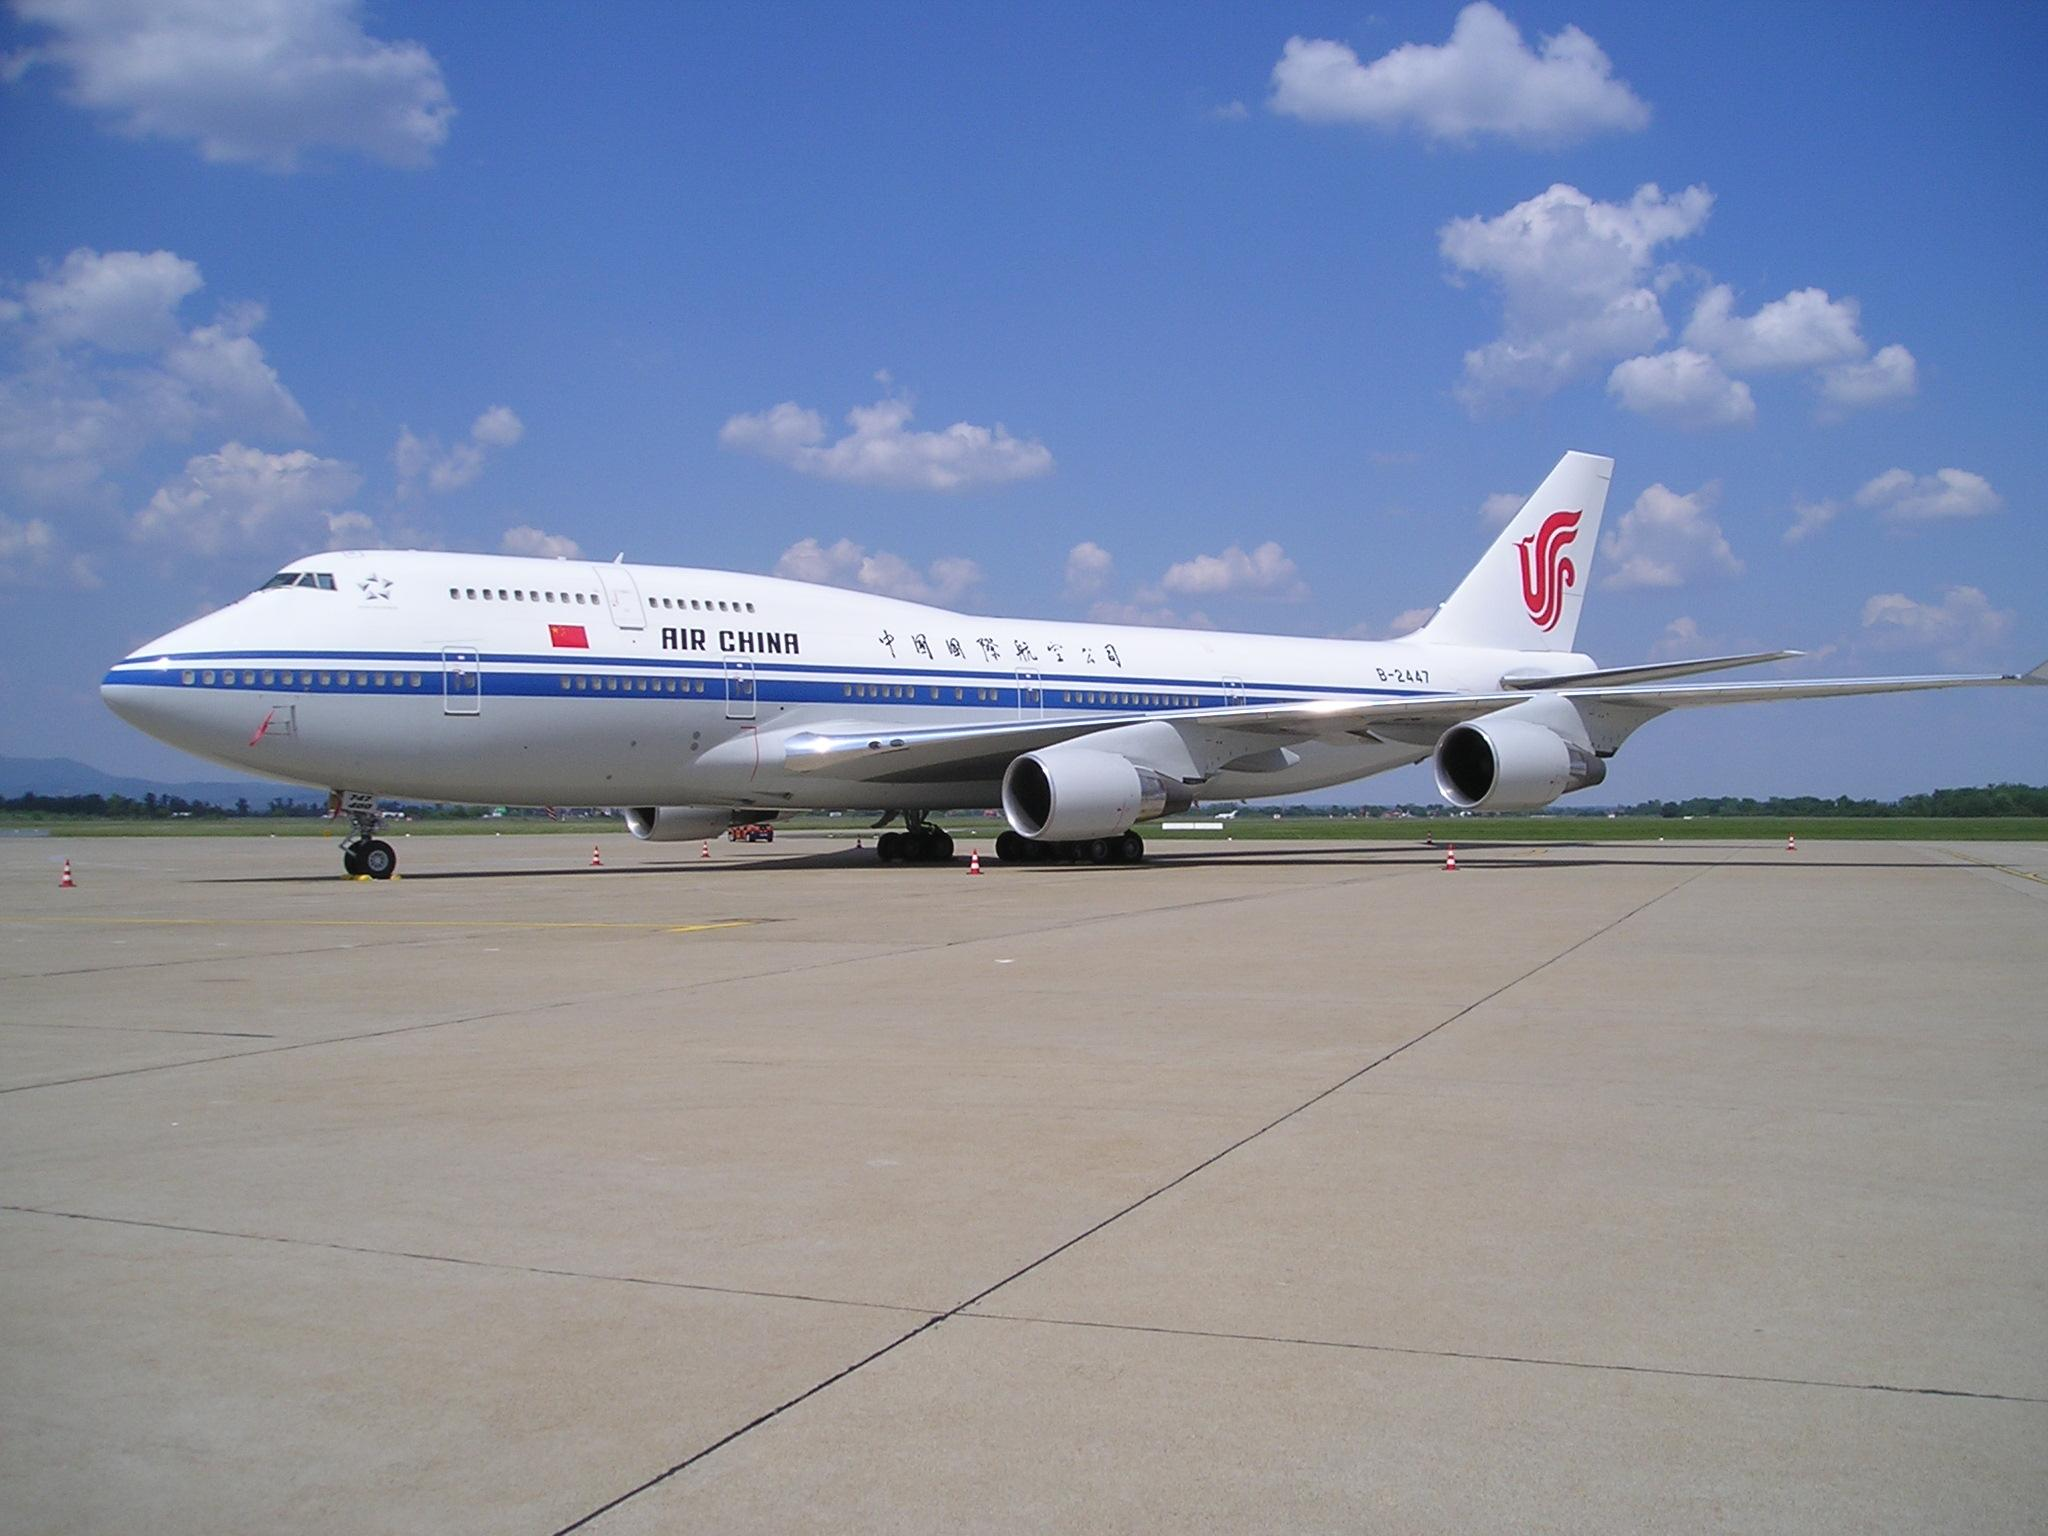 Download this Description Air China picture